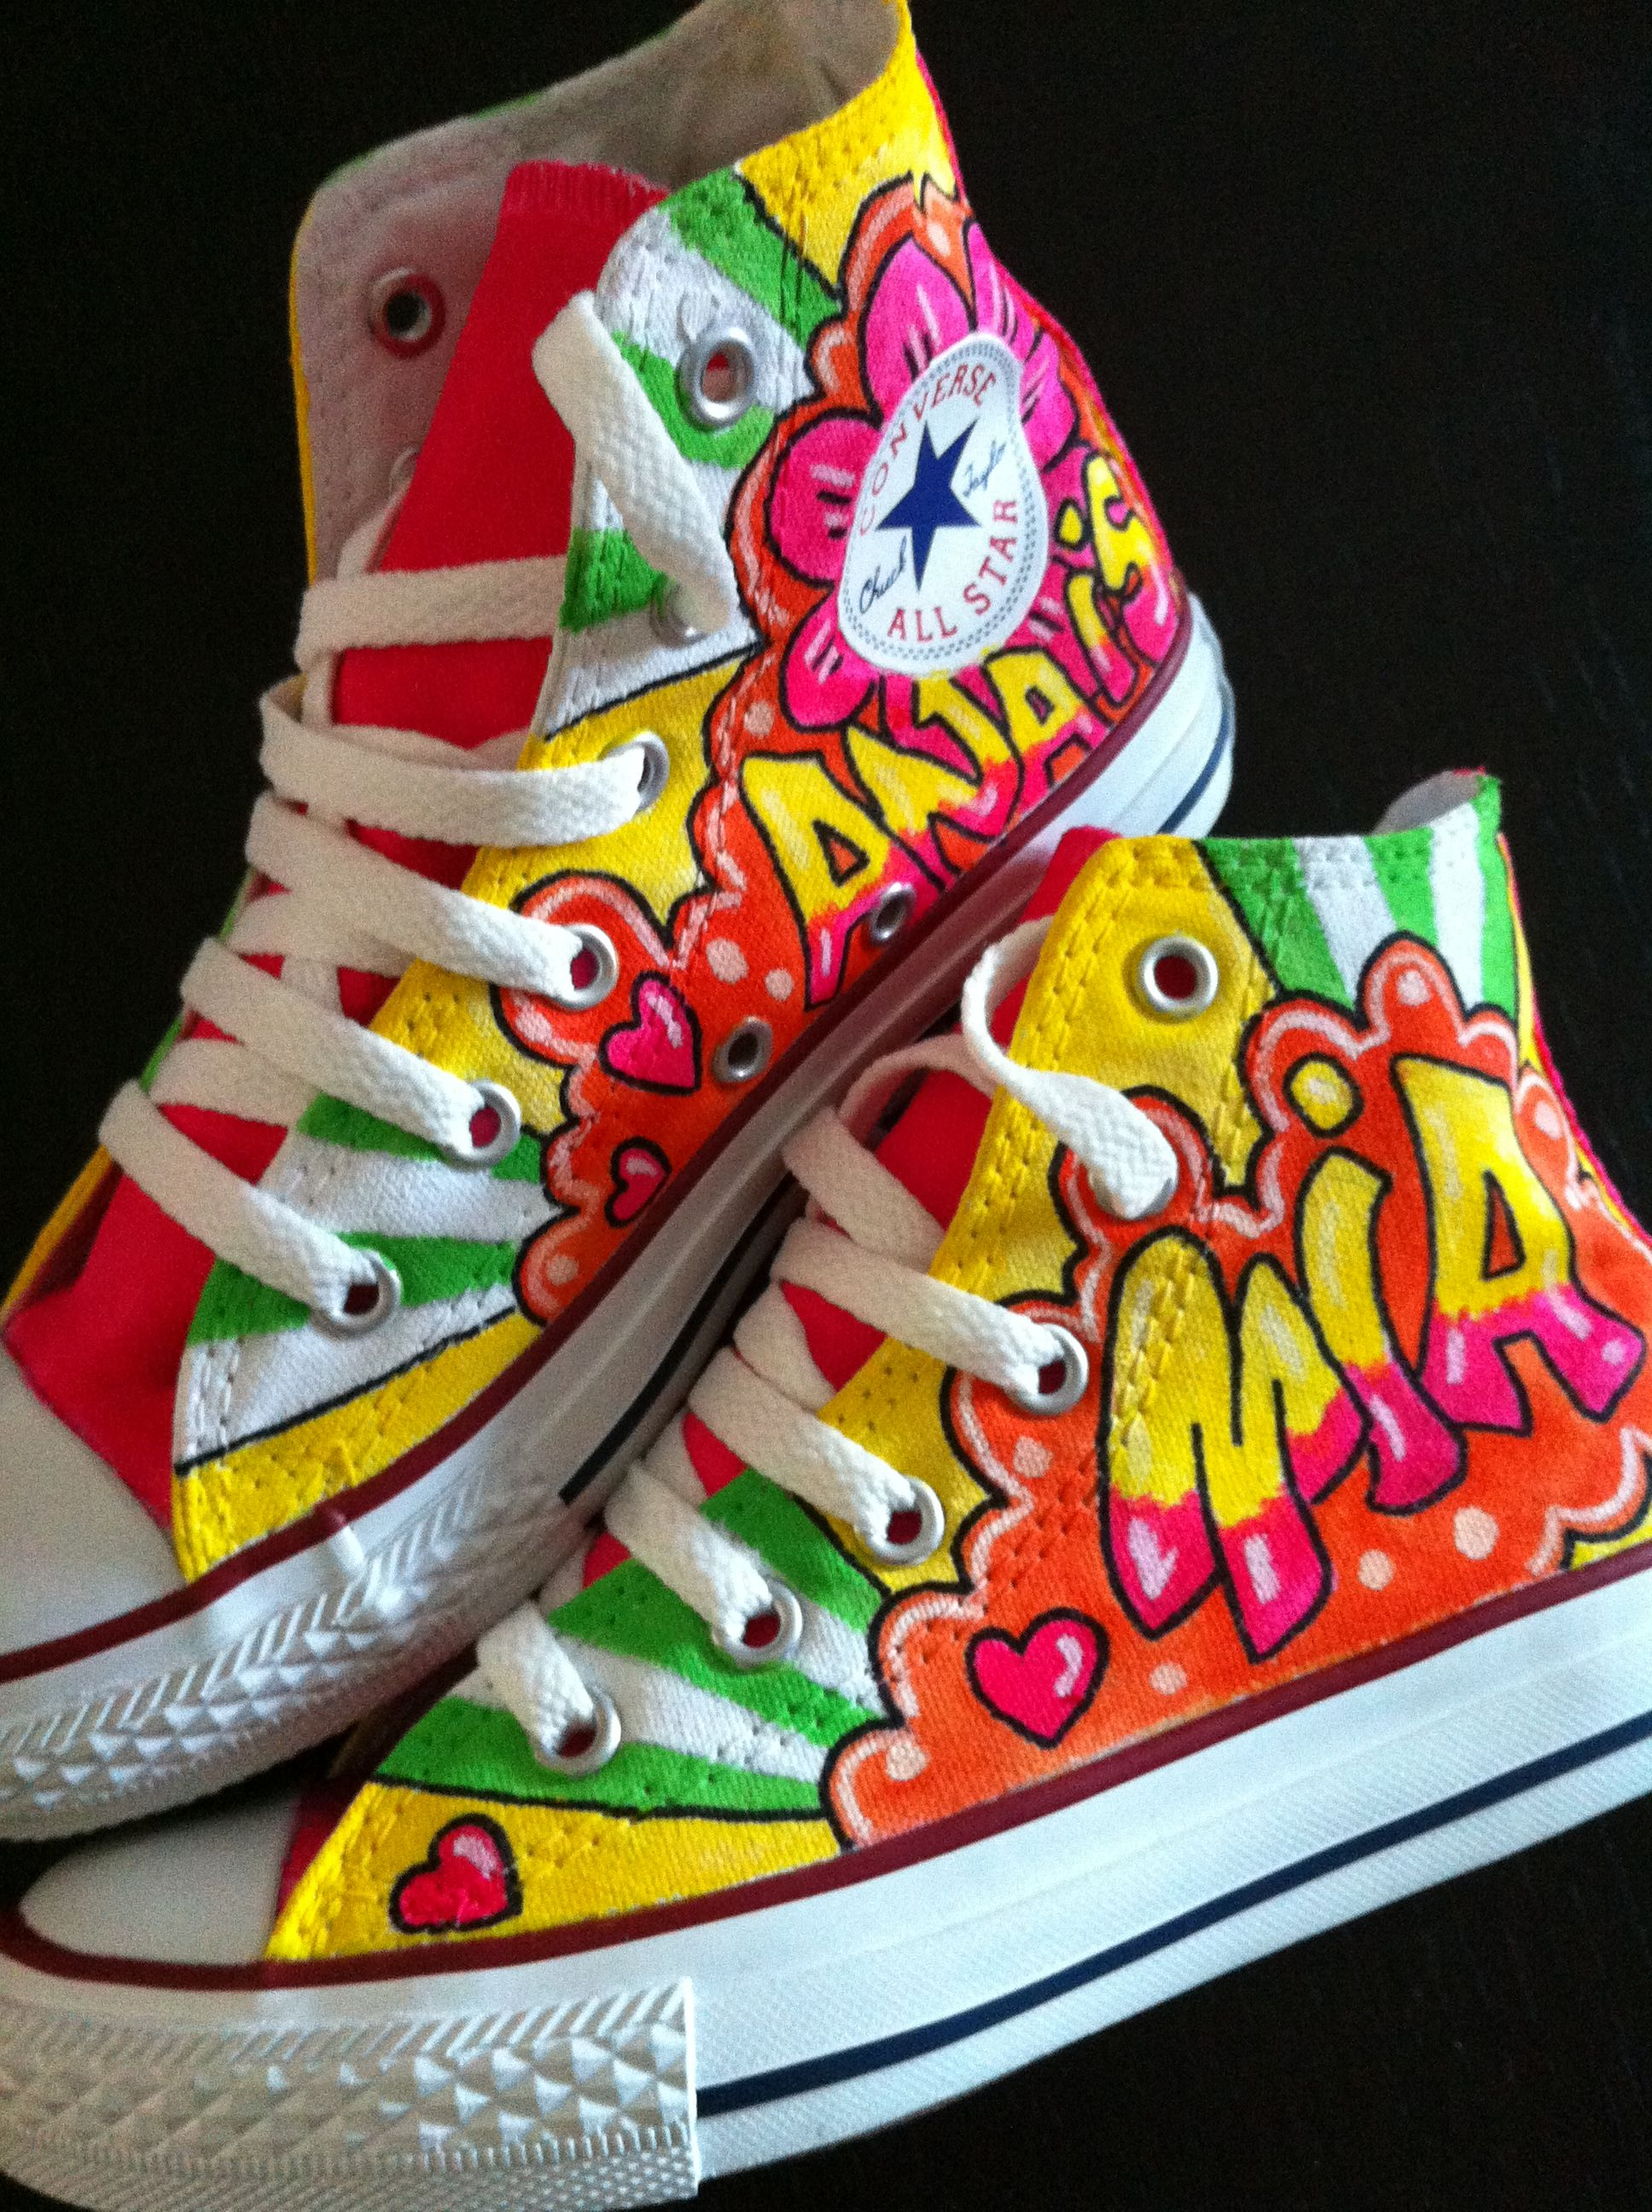 ac98cd6c77ff GIRLY CUSTOM PAINTED GRAFFITI NAME CONVERSE FROM £50 X